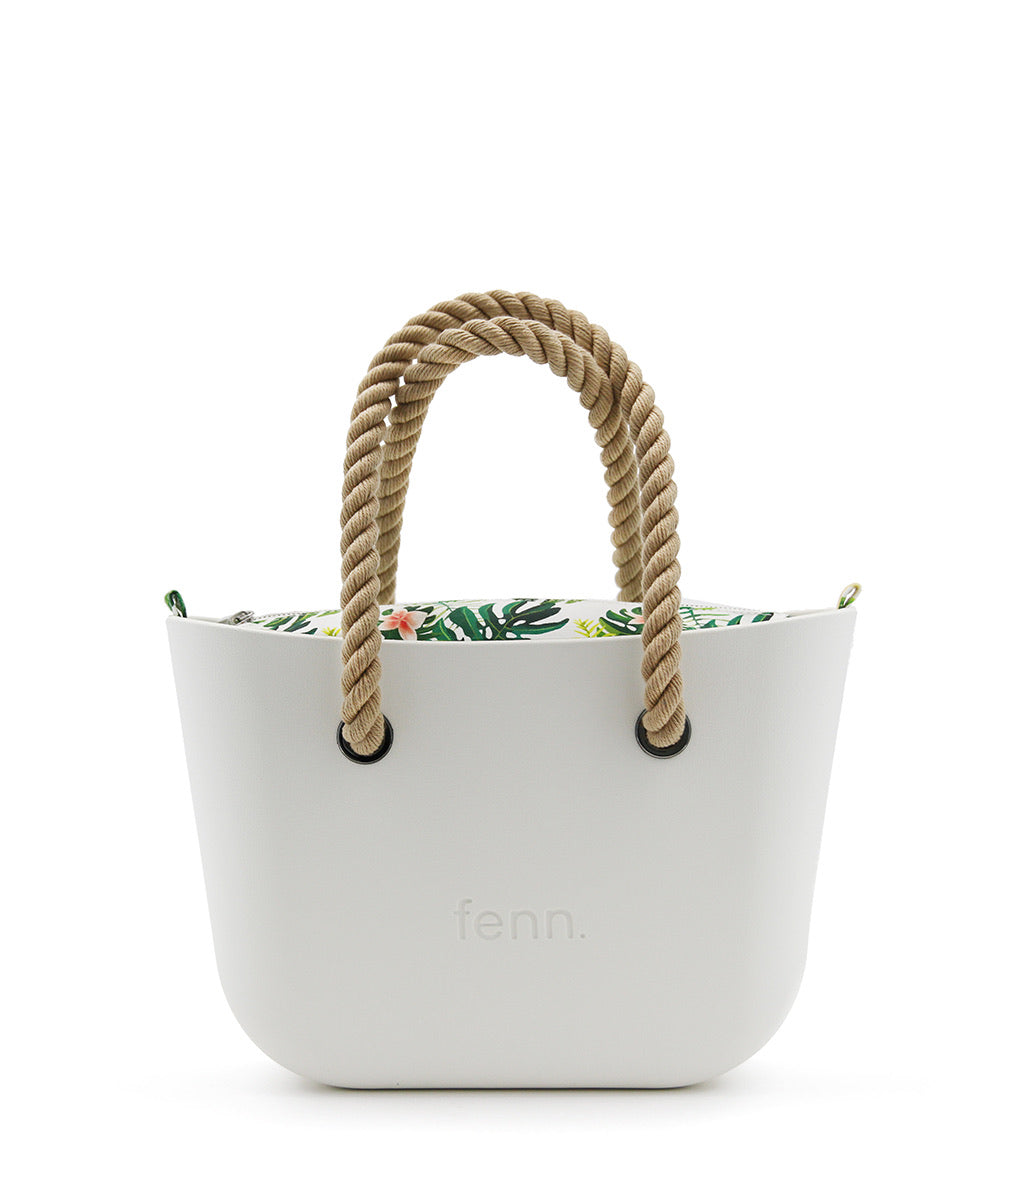 Fenn Petite bag - White with patterned inner and top handle